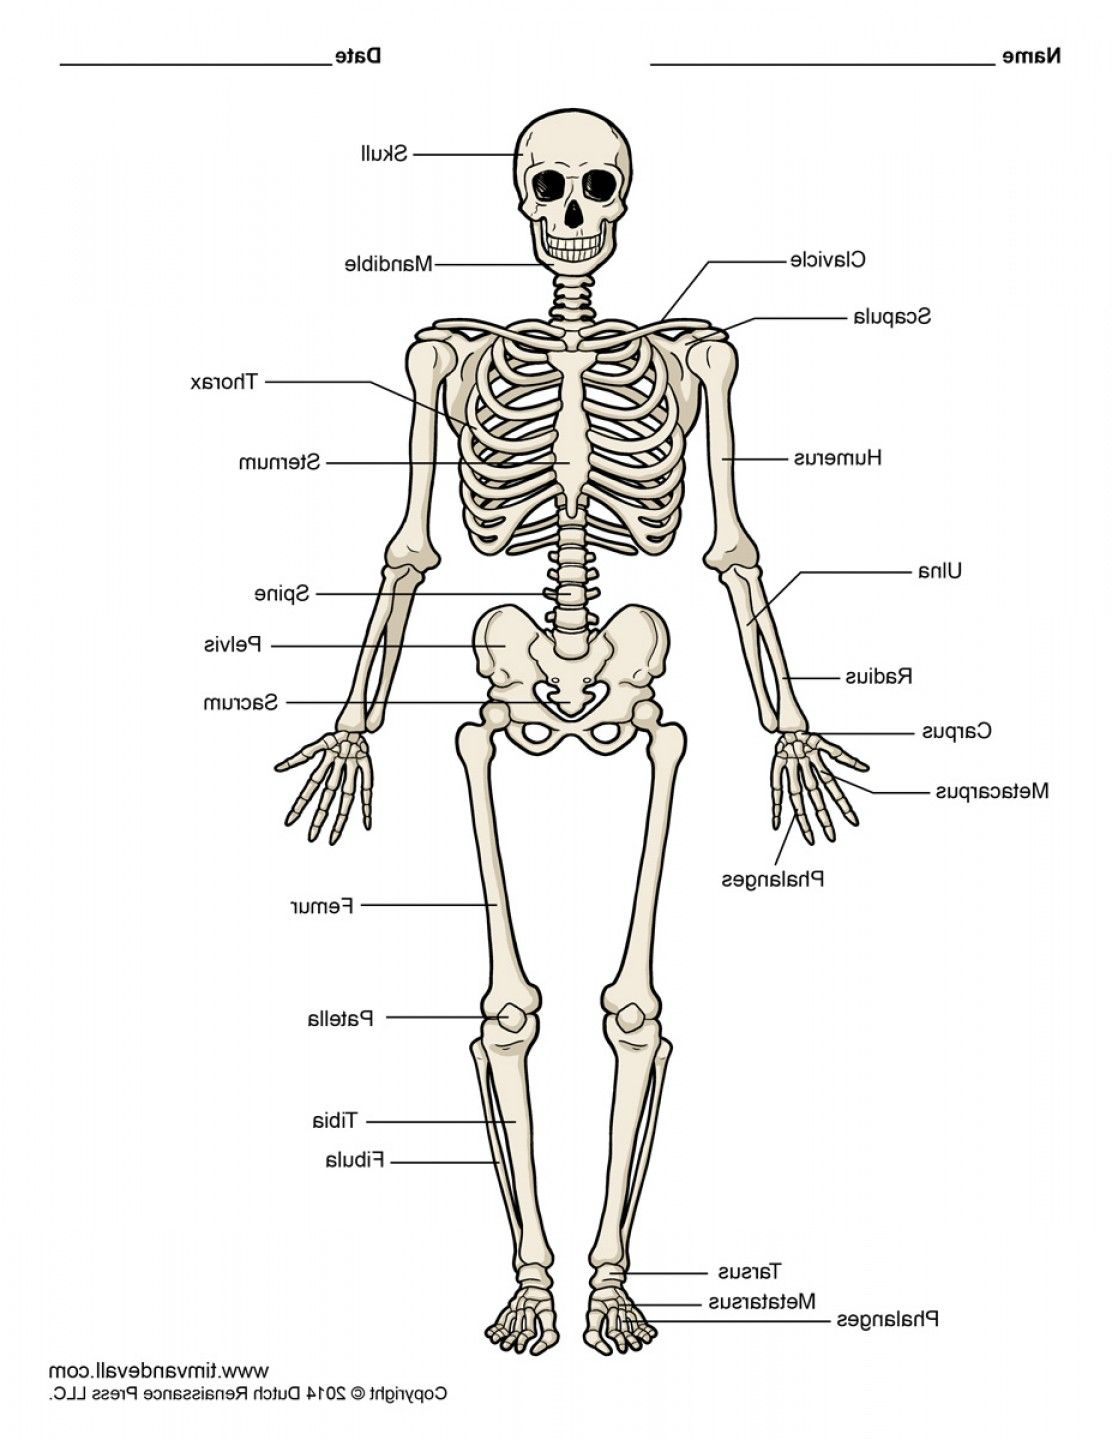 unlabeled diagram of the human skeleton unlabeled diagram of the unlabeled body diagram [ 1112 x 1440 Pixel ]